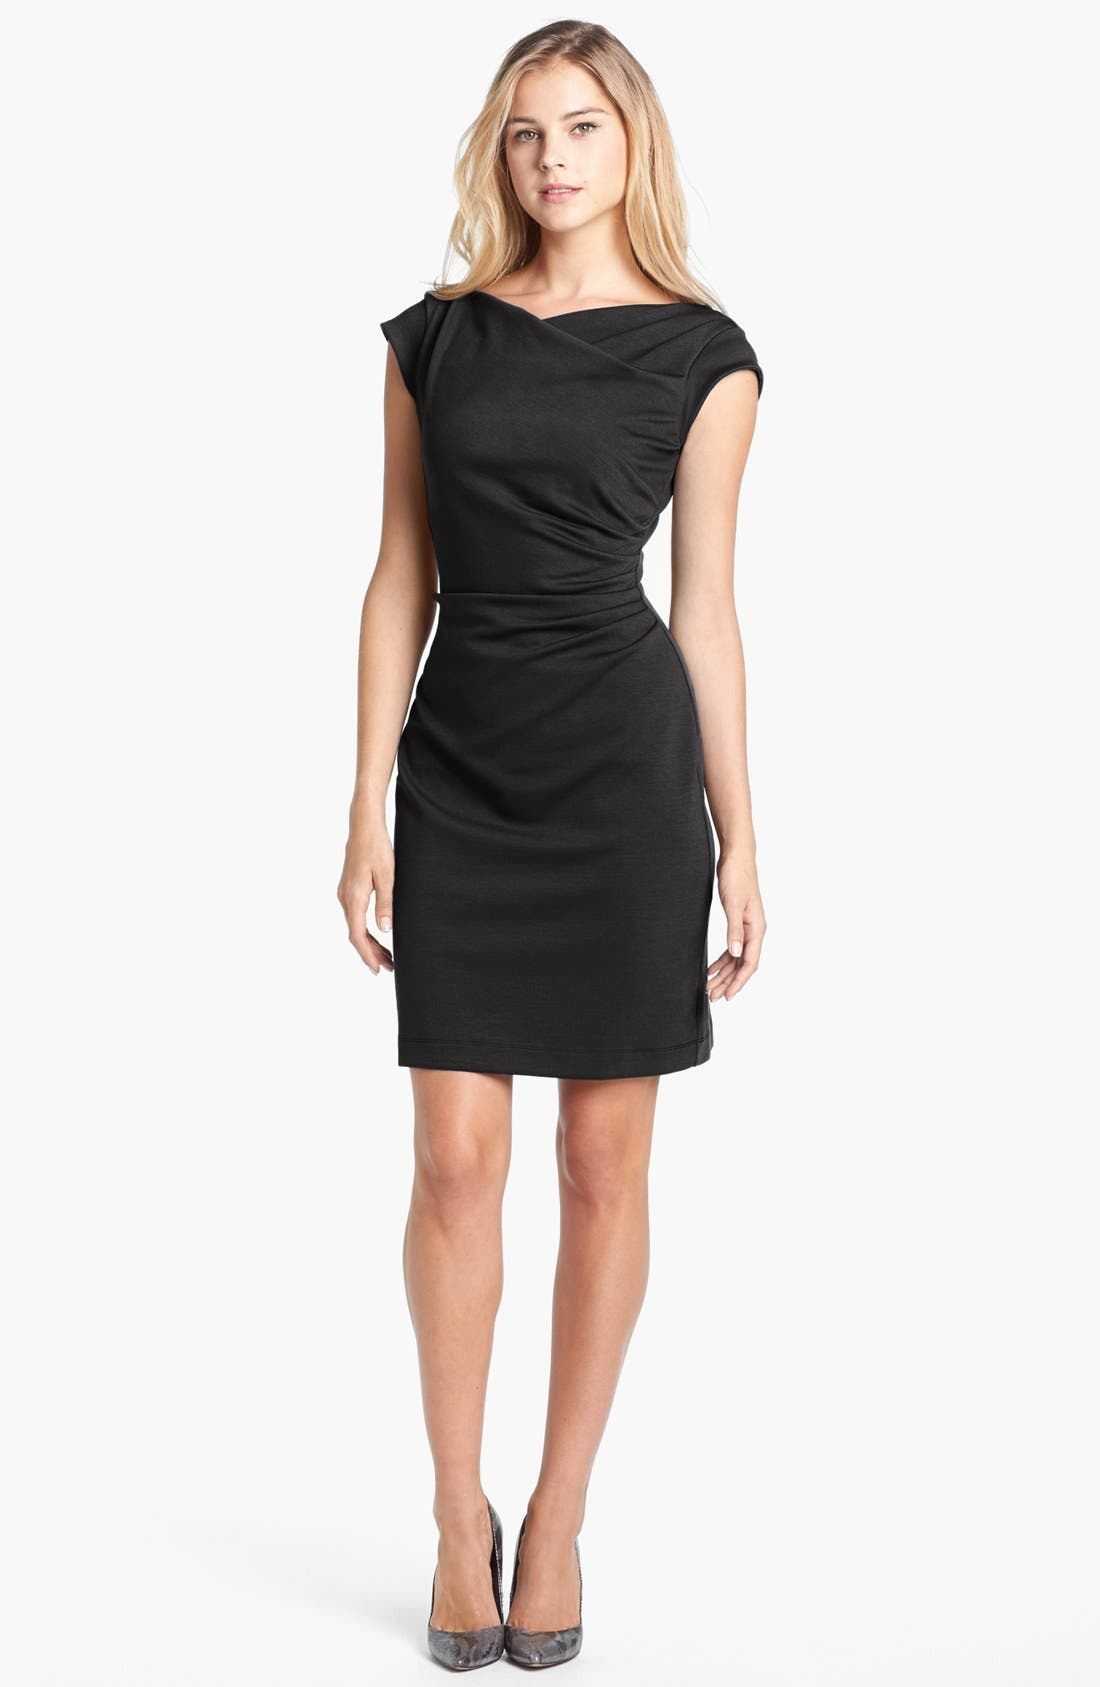 Main Image - Taylor Dresses Cowl Neck Sheath Dress